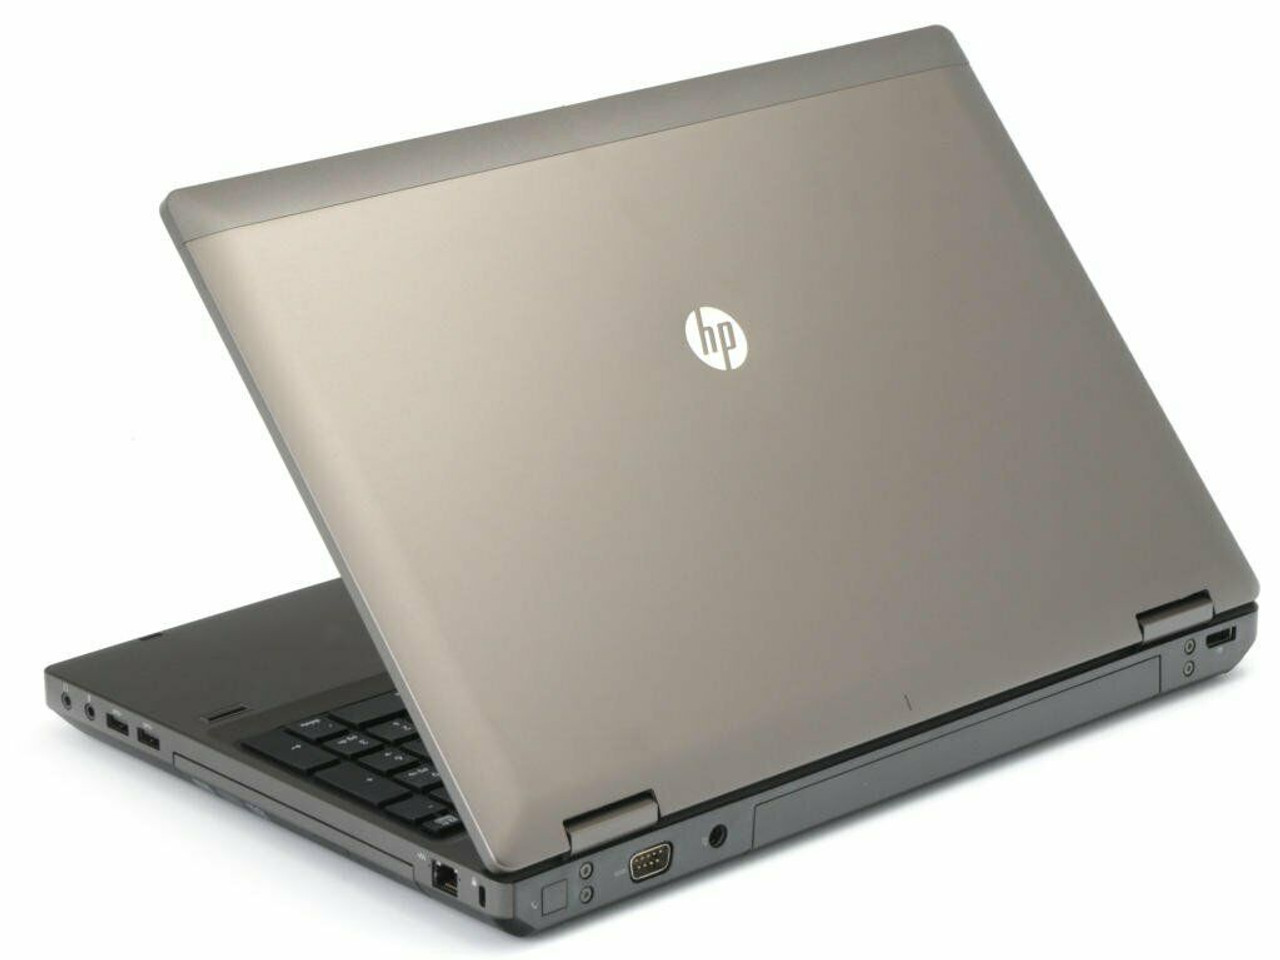 HP Compaq Probook 6570b Laptop Core i5 2.6GHz, 8GB Ram, 250GB SSD, DVD-RW, Windows 10 Pro 64 Notebook